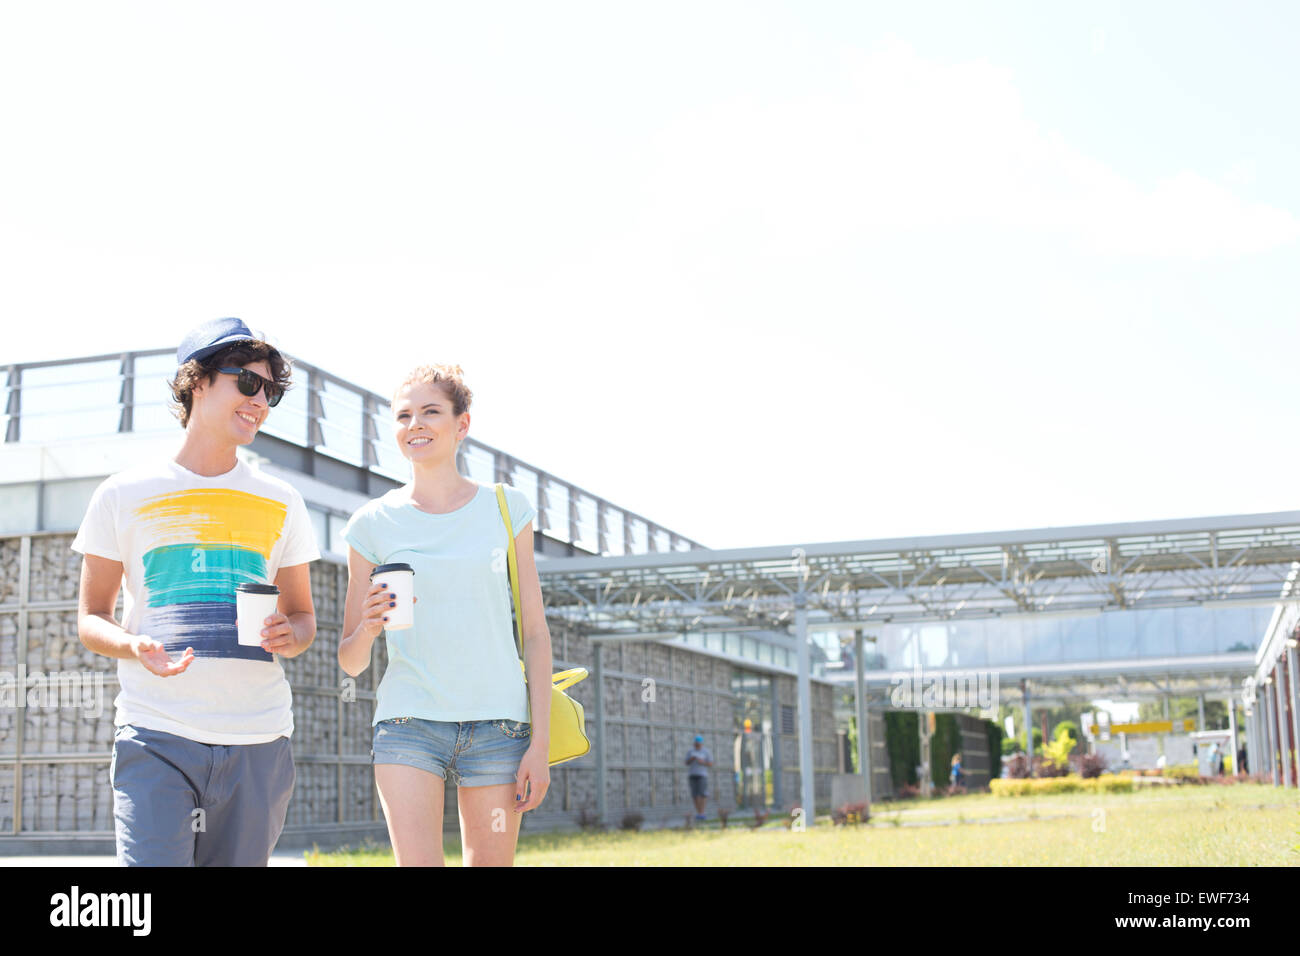 Smiling couple holding disposable cups while walking at park - Stock Image